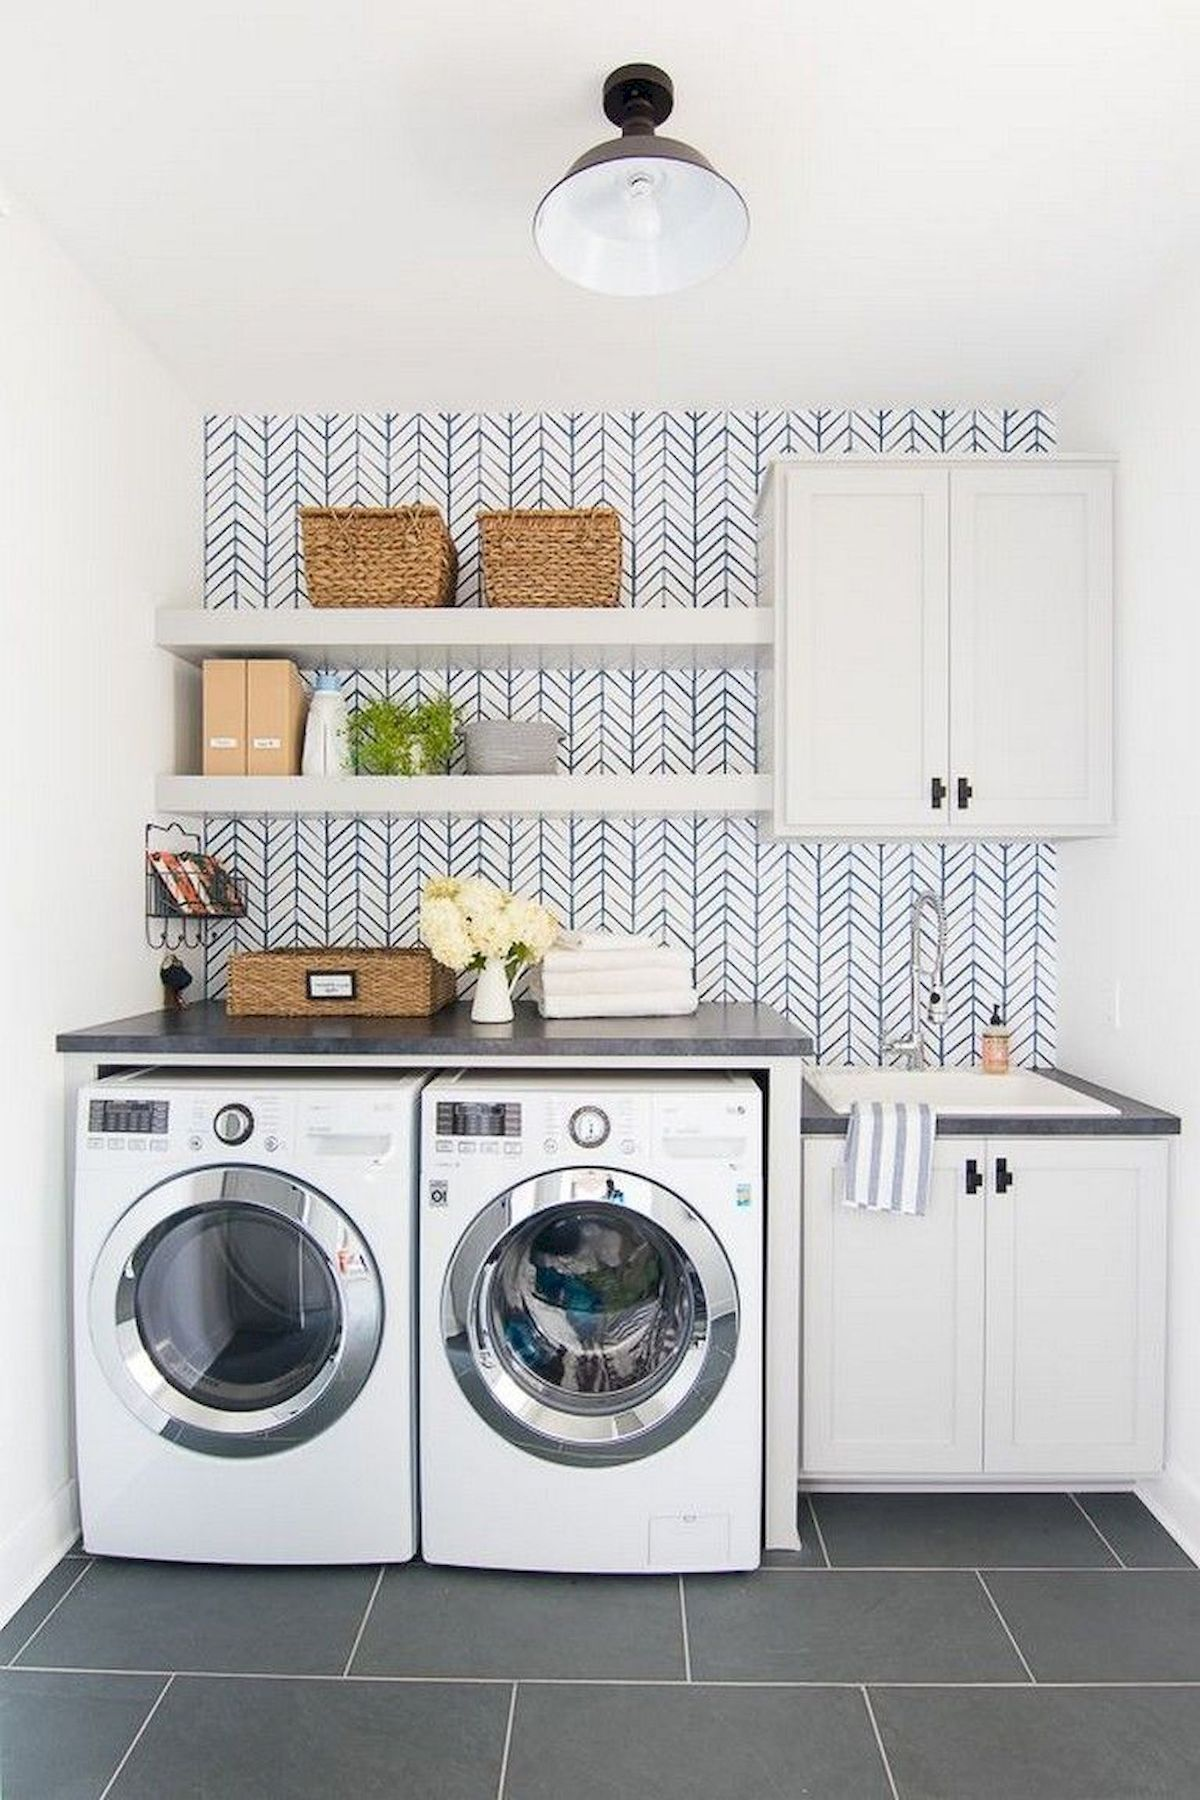 10 Great Modern Farmhouse Small Laundry Room Ideas Organization On